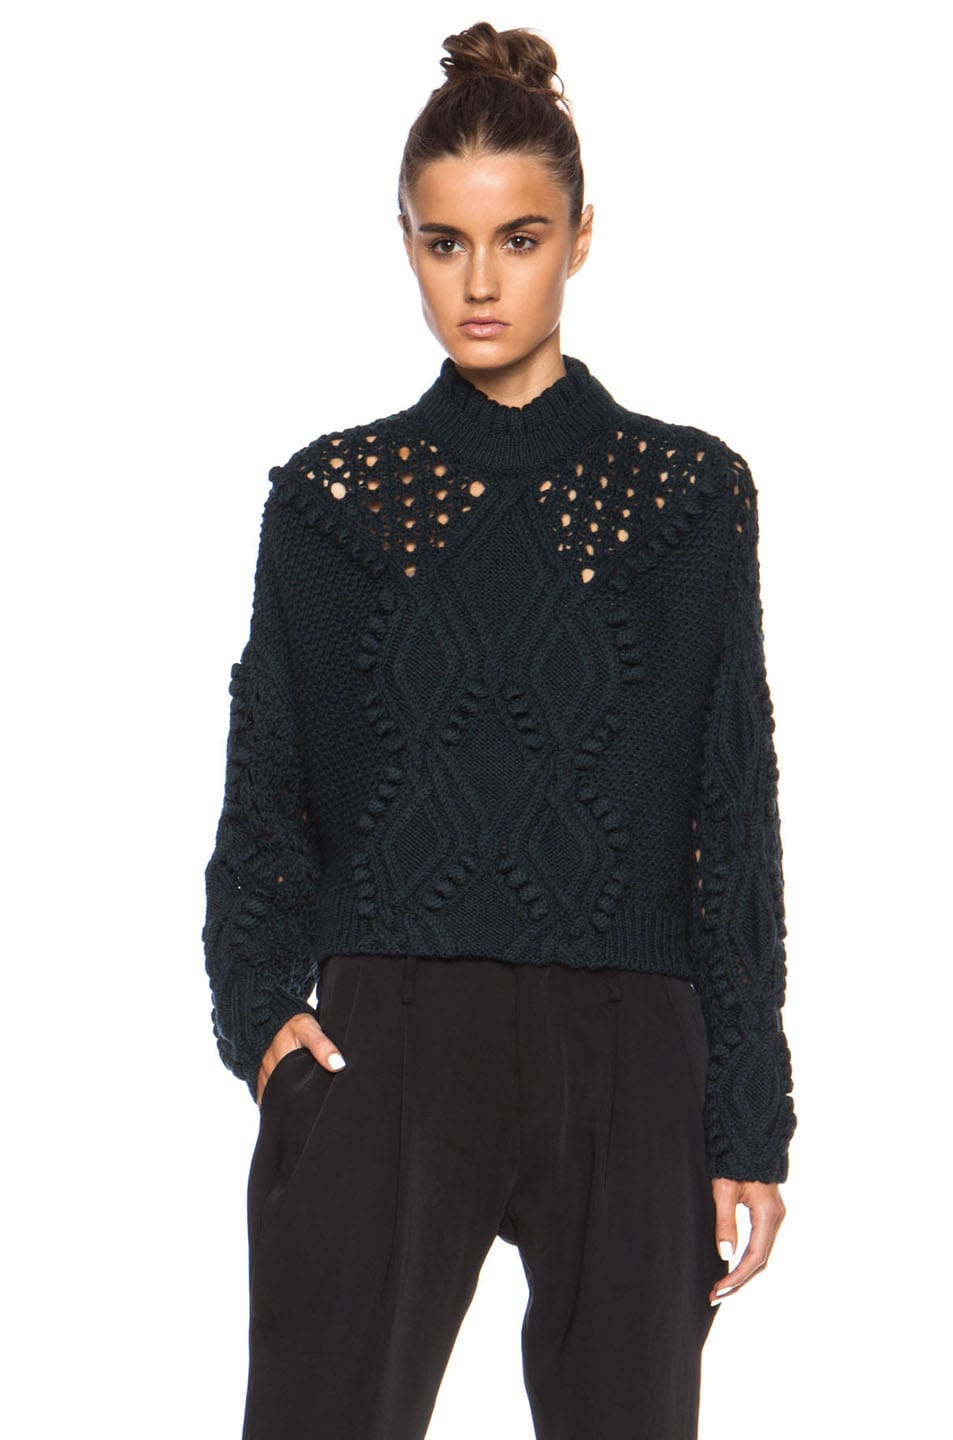 Image 1 of 3.1 phillip lim Cable and Popcorn Cropped Wool Pullover in Forest Melange